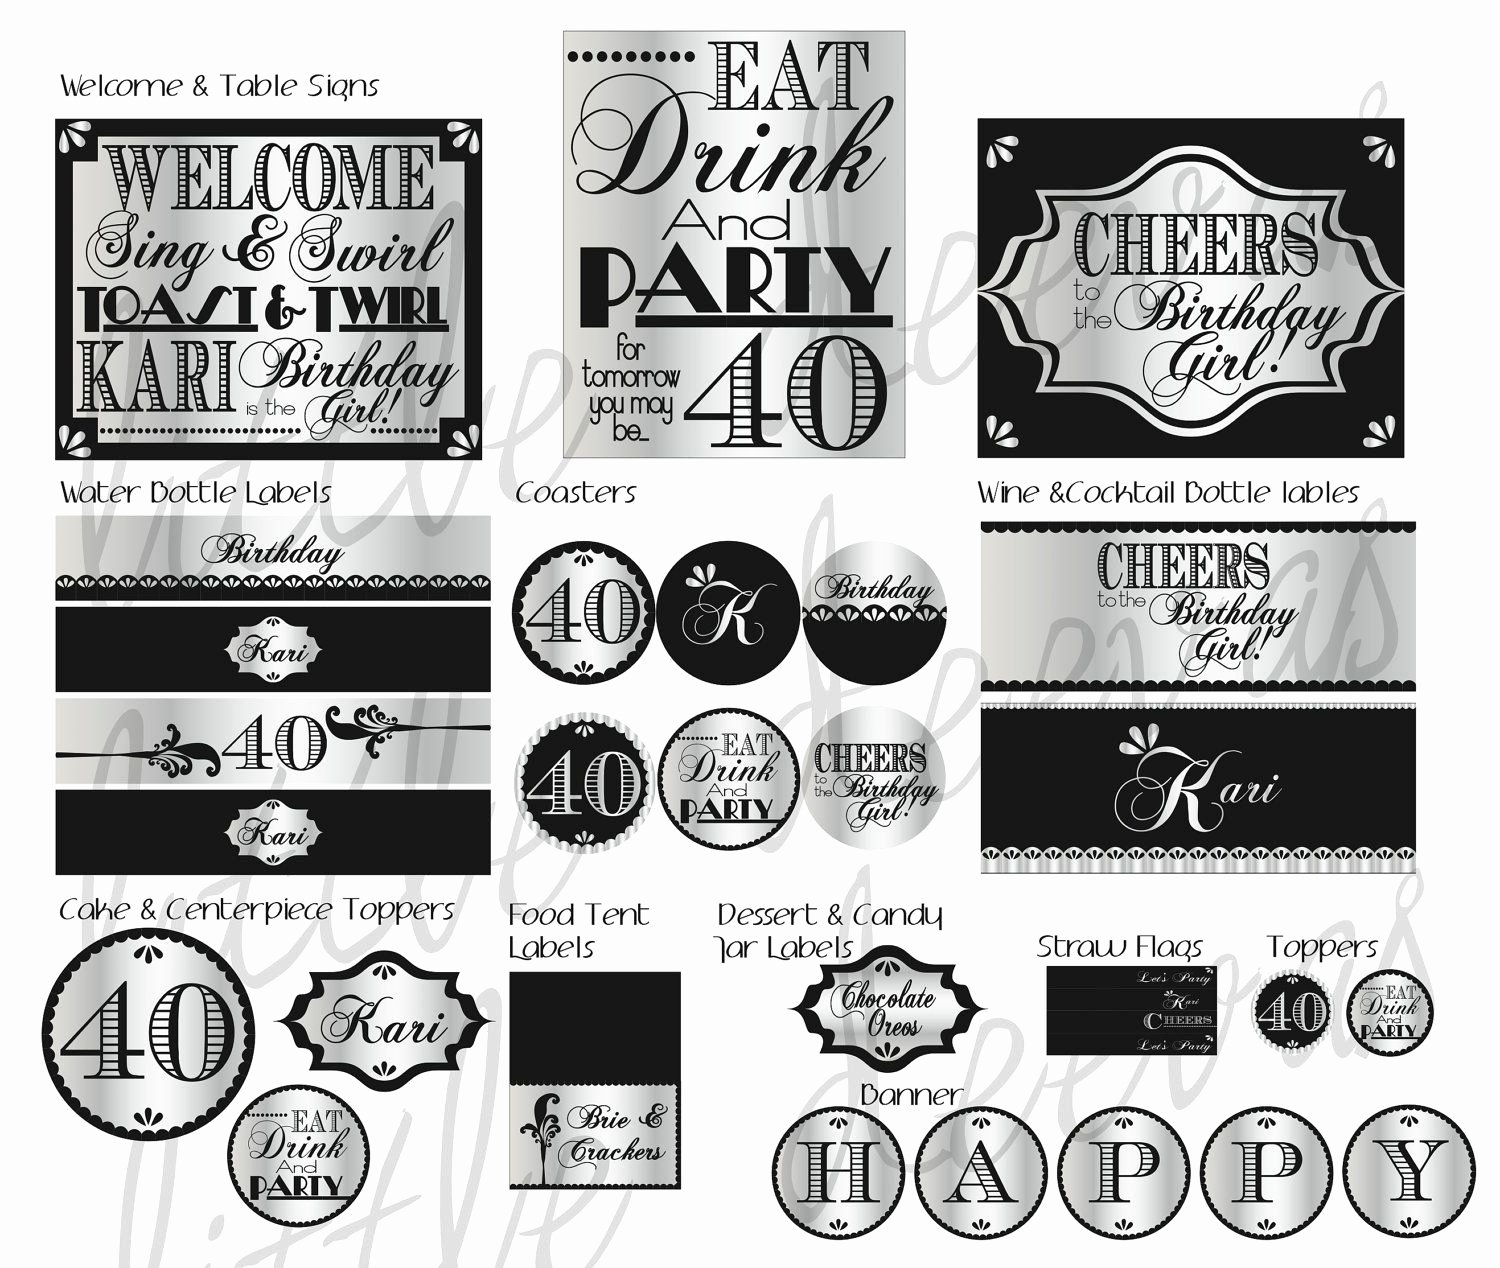 40th Birthday Free Printables Lovely 40th Birthday Pdf Printable Party Pack $40 00 Via Etsy